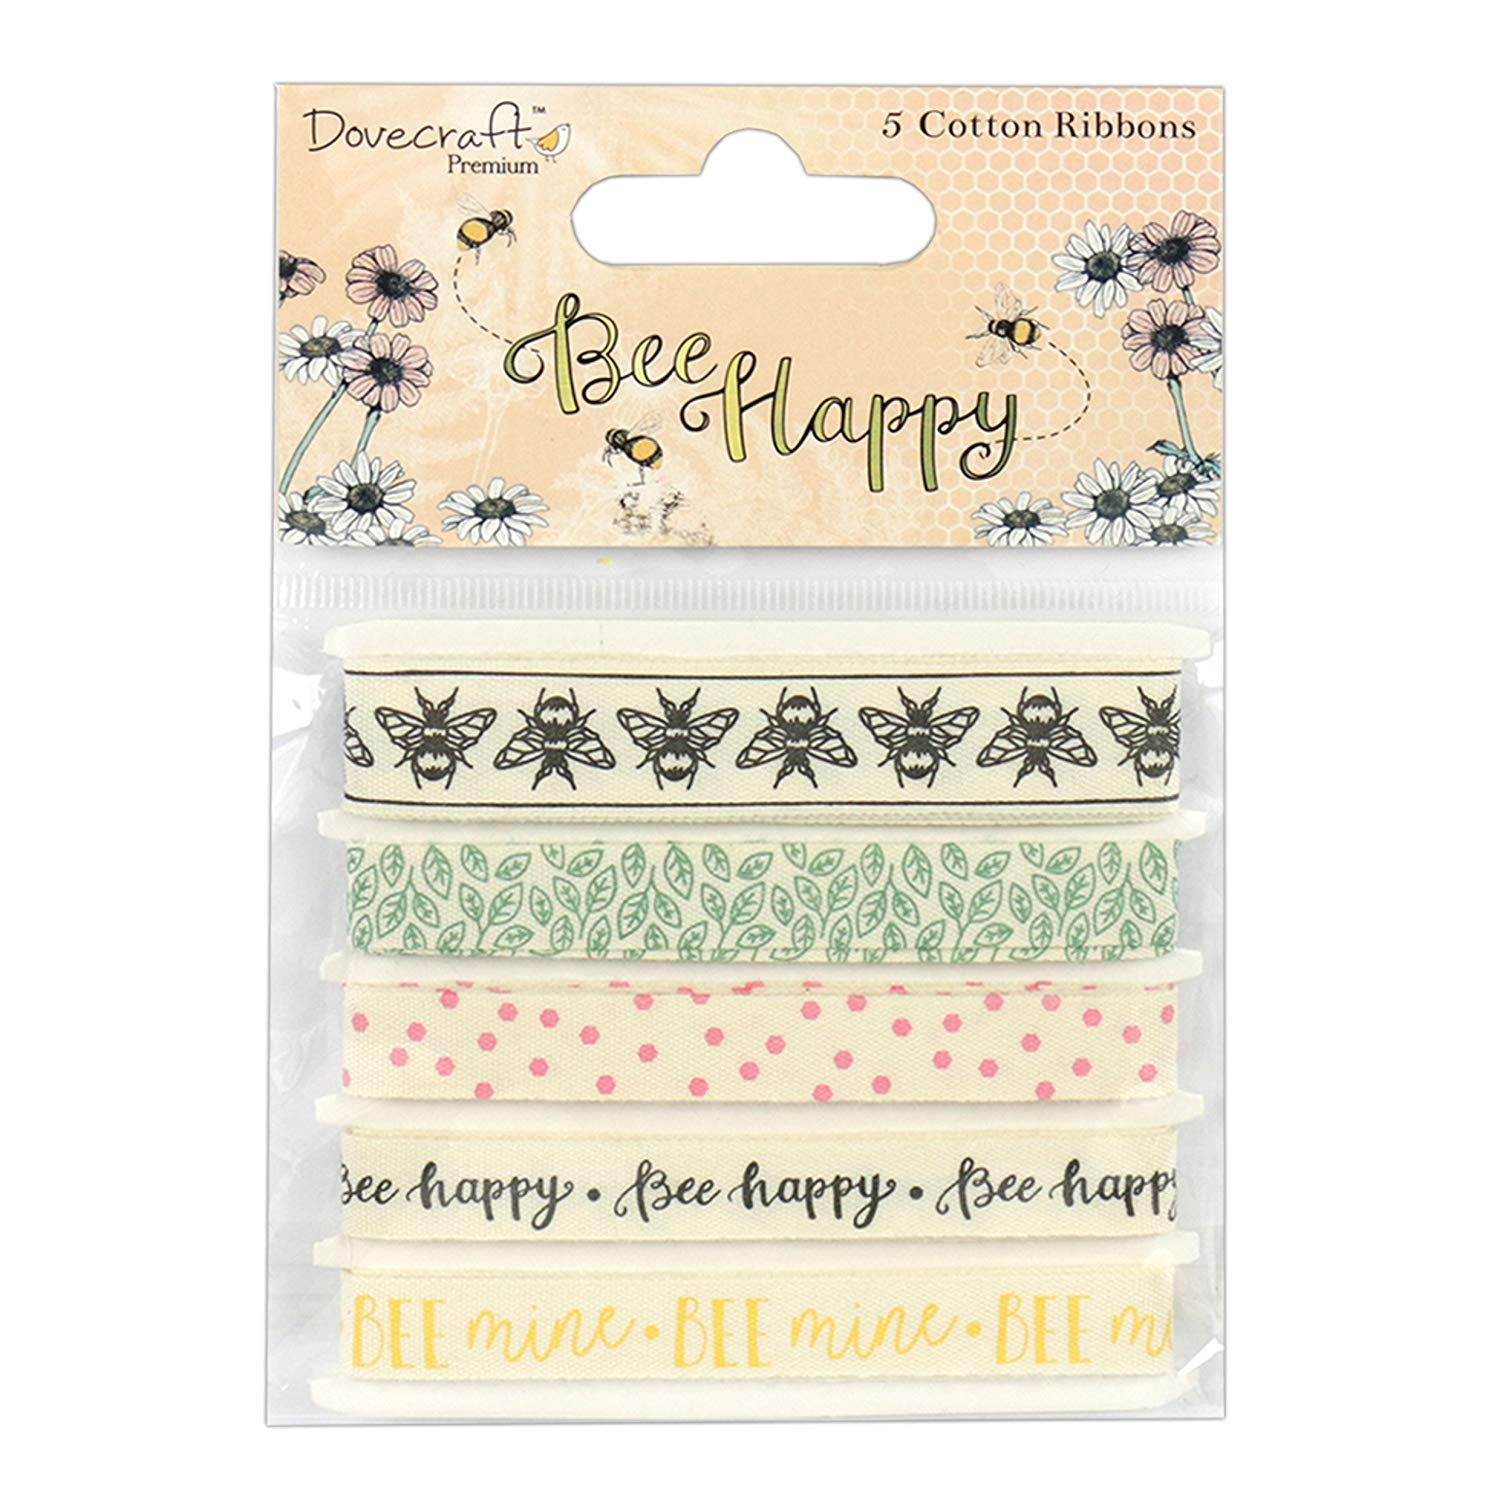 Dovecraft Premium Bee Happy Paper Craft Collection - Cotton Ribbons (1m)